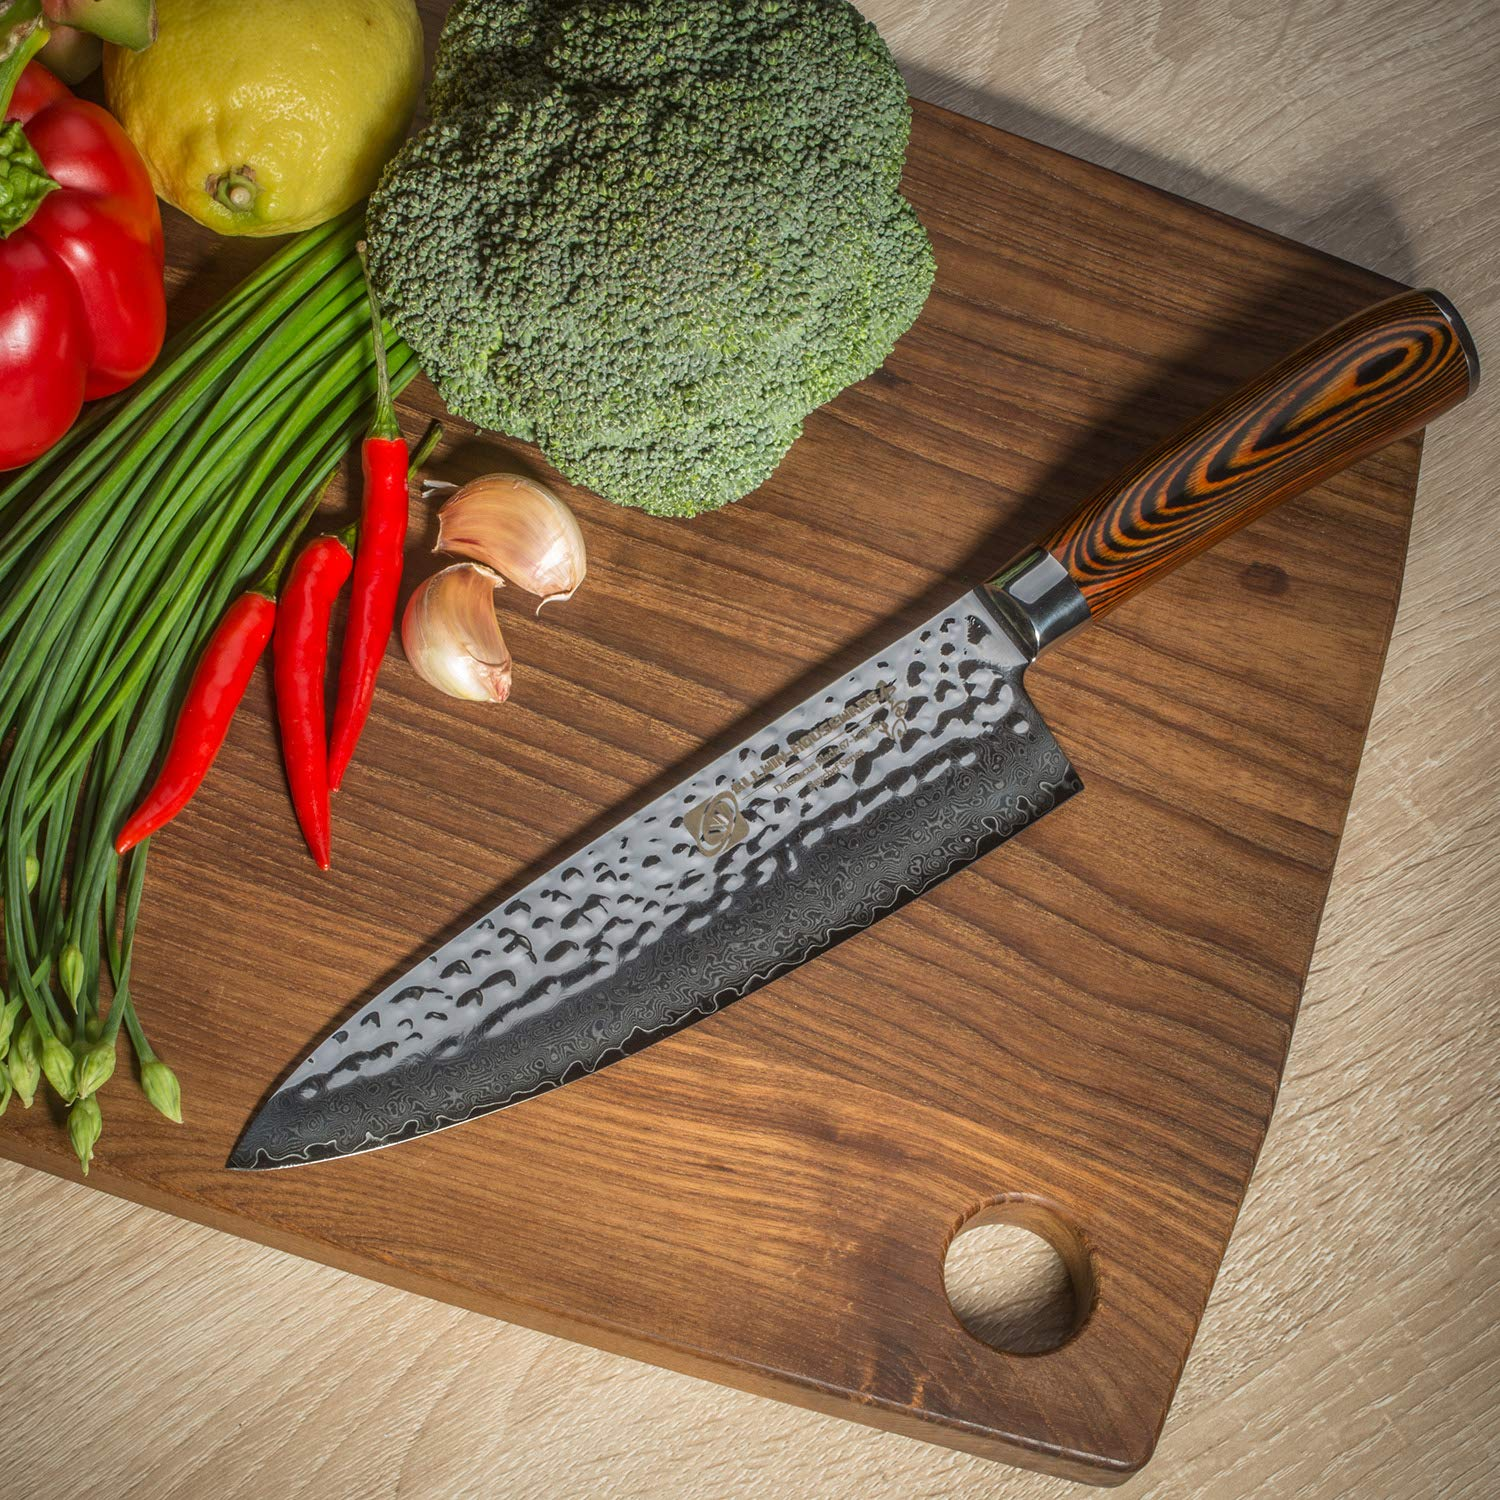 Damascus Chef Knife with Japanese VG10 Super Steel Core, Professional 67-layer Handmade 8'' PAKKA Wood Handle Damascus Chefs Knife by ALLWIN-HOUSEWARE W (Image #4)